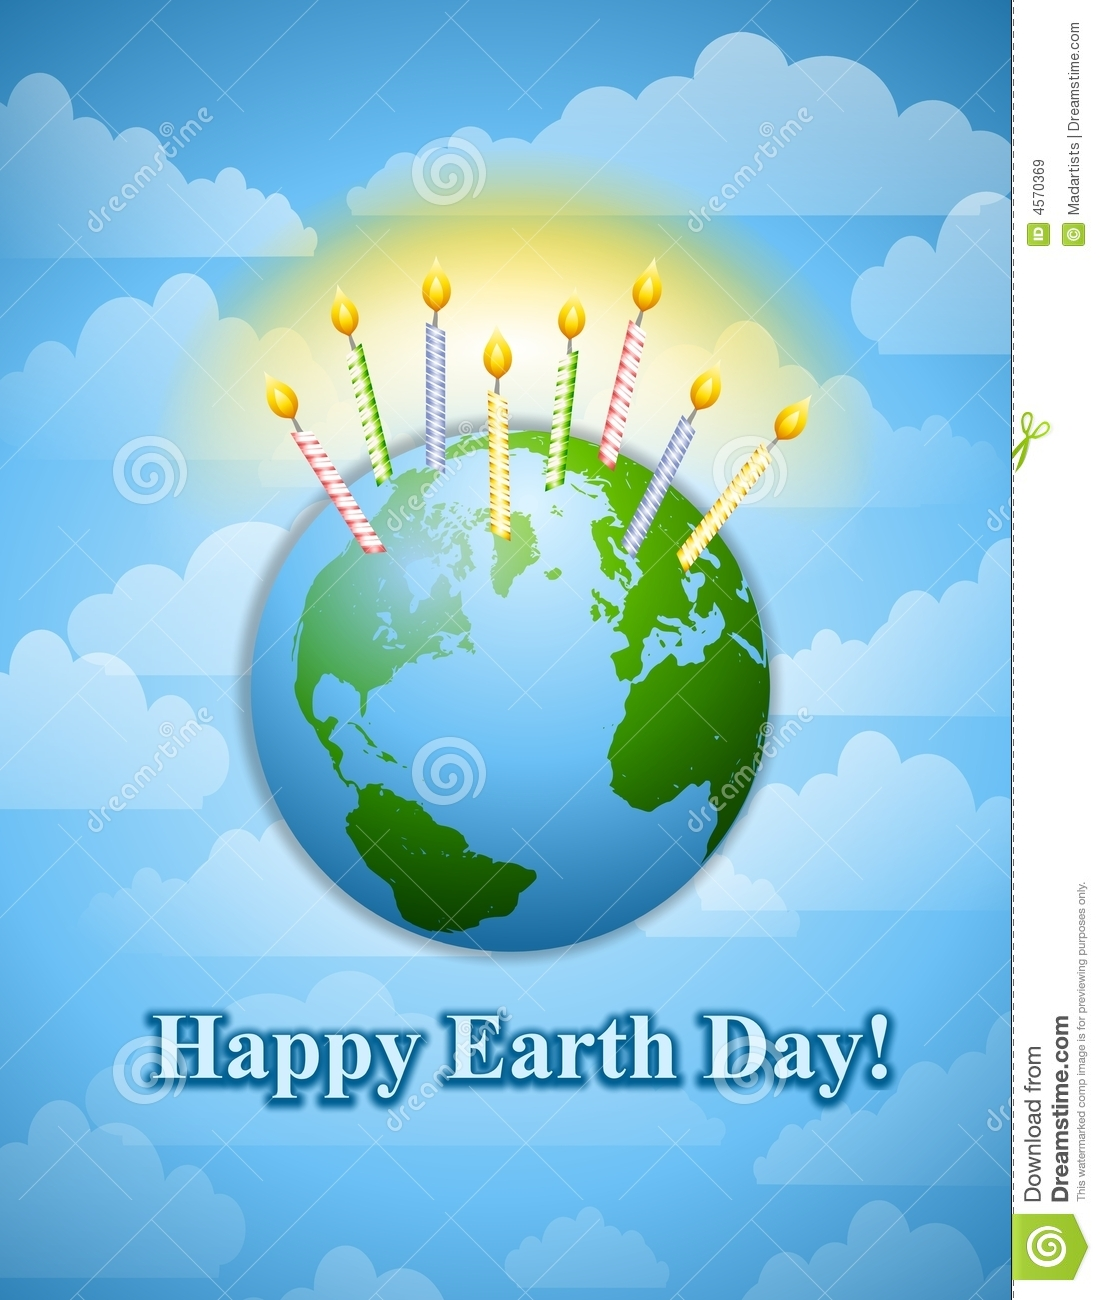 Happy Earth Day Birthday Candles Stock Illustration